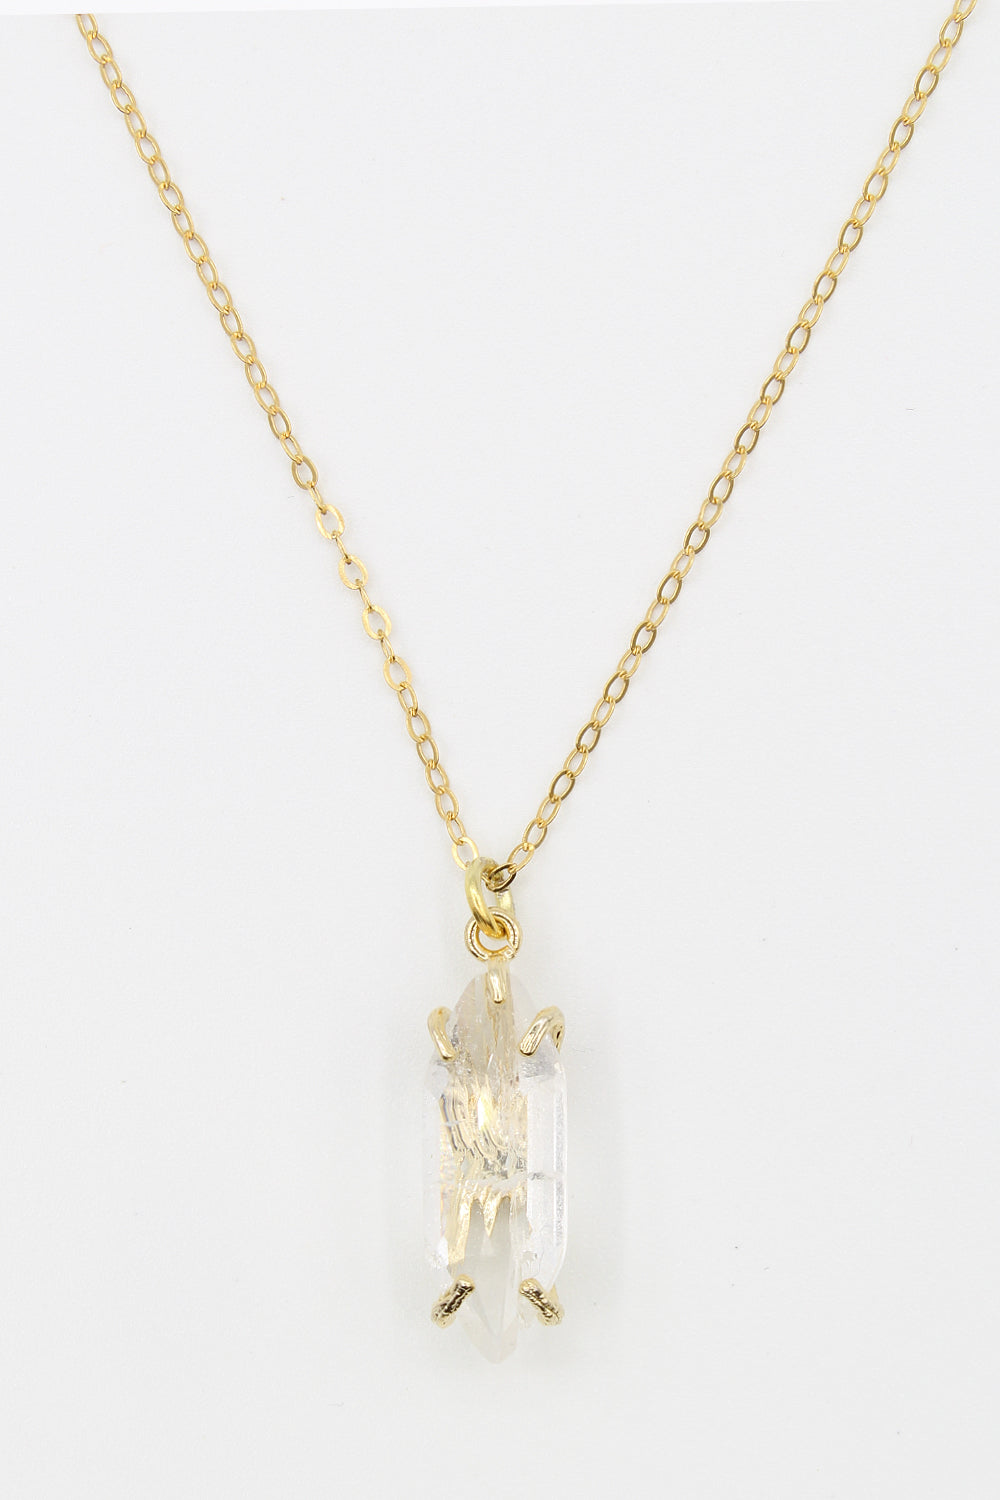 Clarity Quartz Gold Chain Necklace